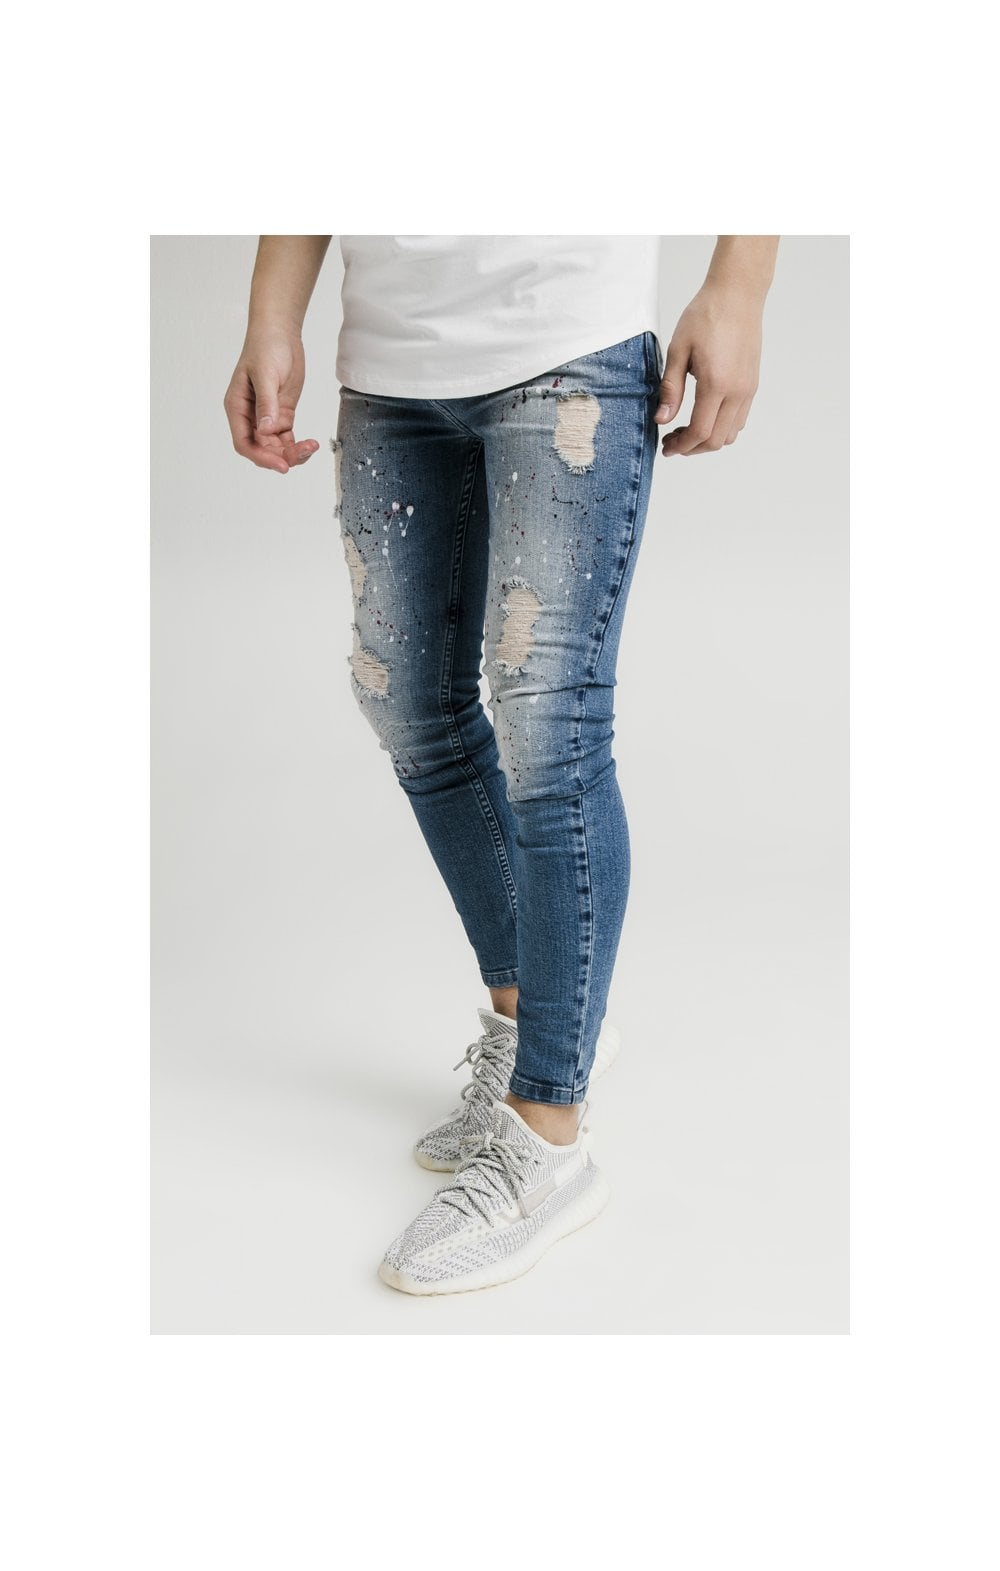 Illusive London Riot Skinny Denims - Dark Blue